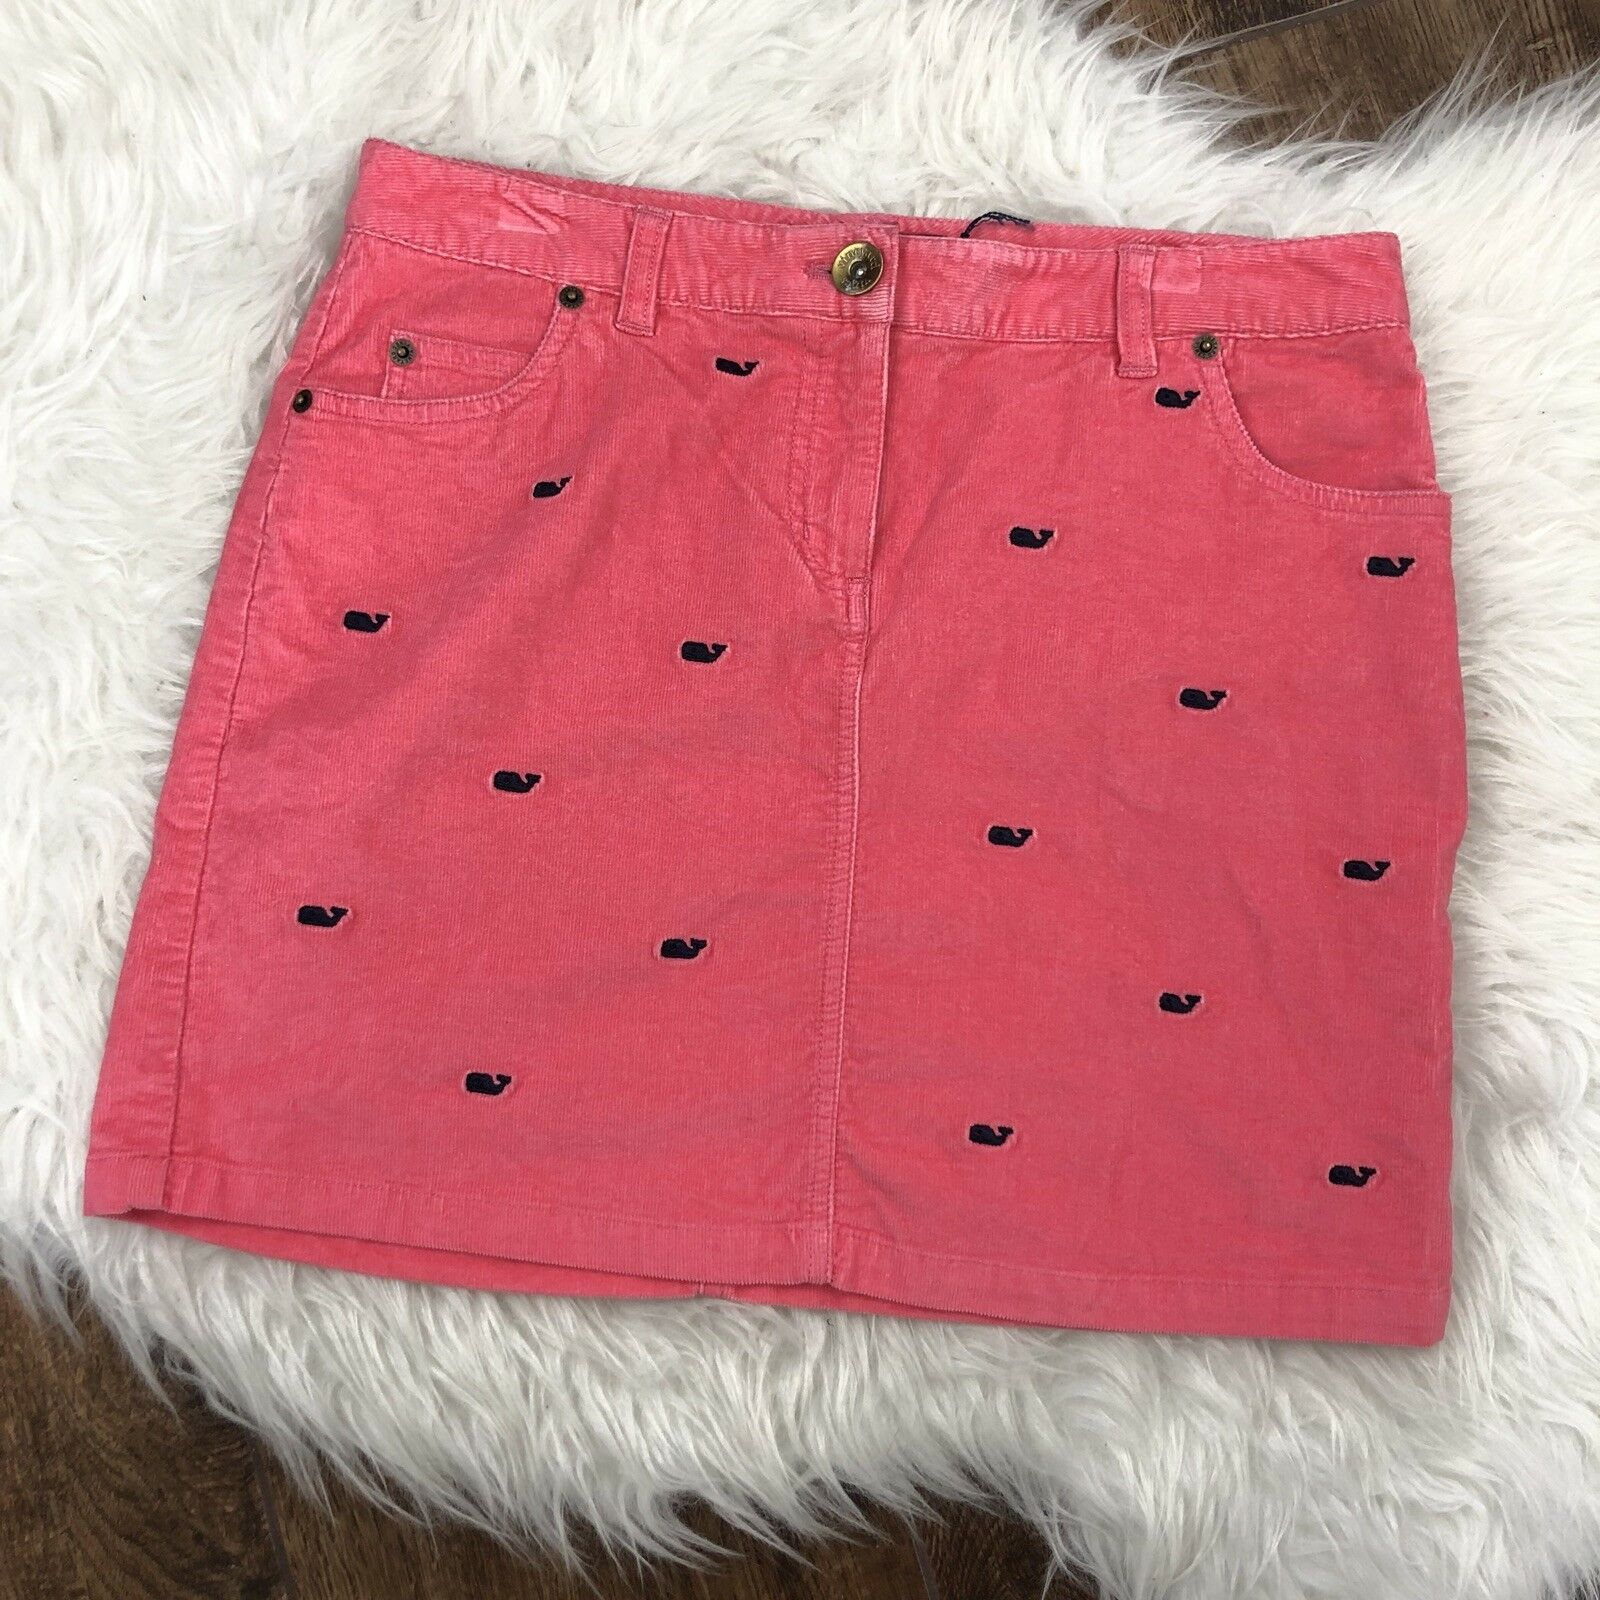 Vineyard Vines Womens Size 4 Pink Corduroy Whale Pattern Skirt